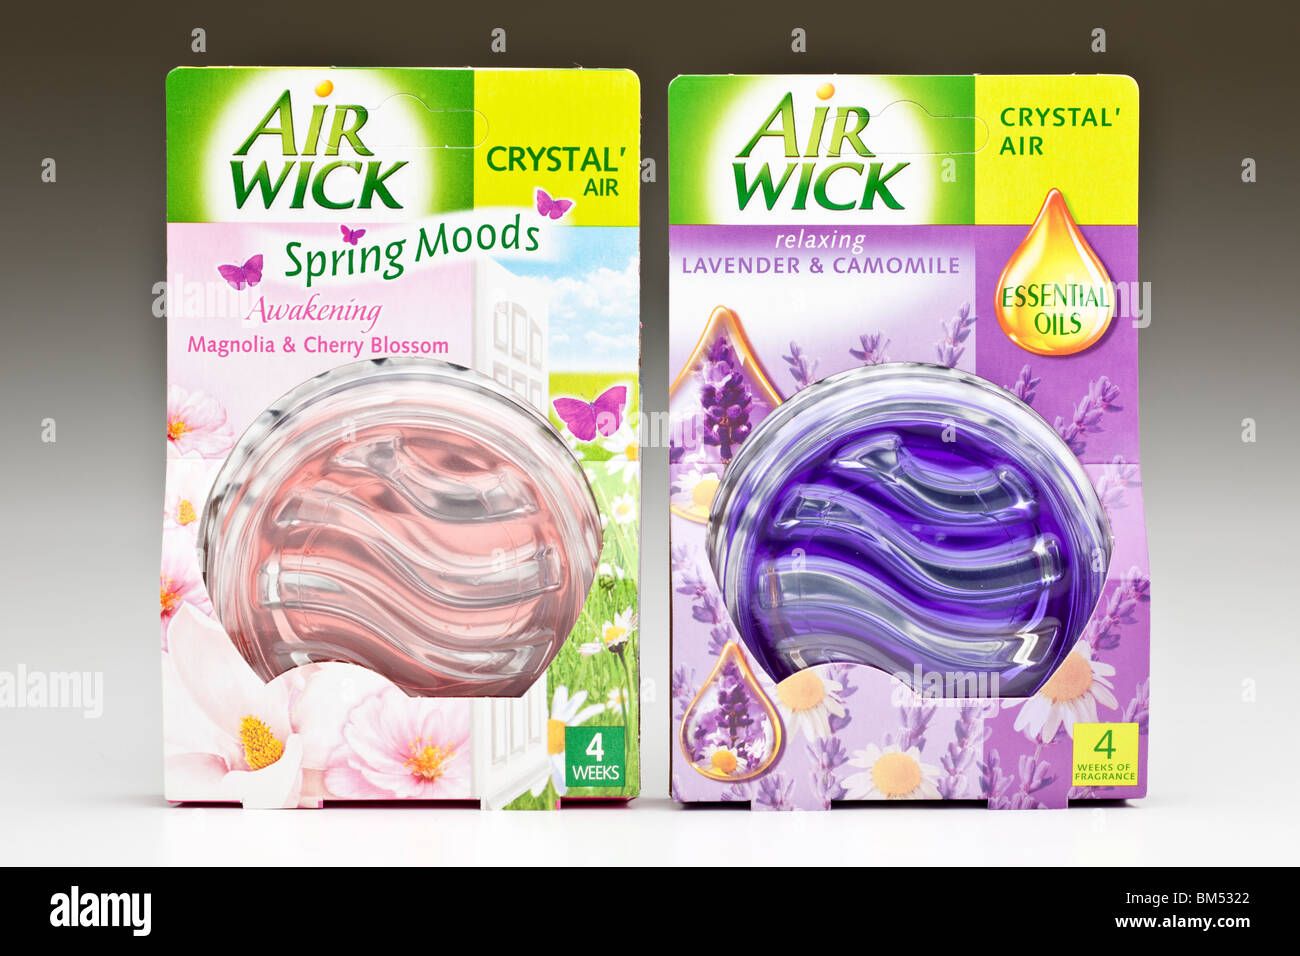 Two packed Airwick crystal airs - Stock Image